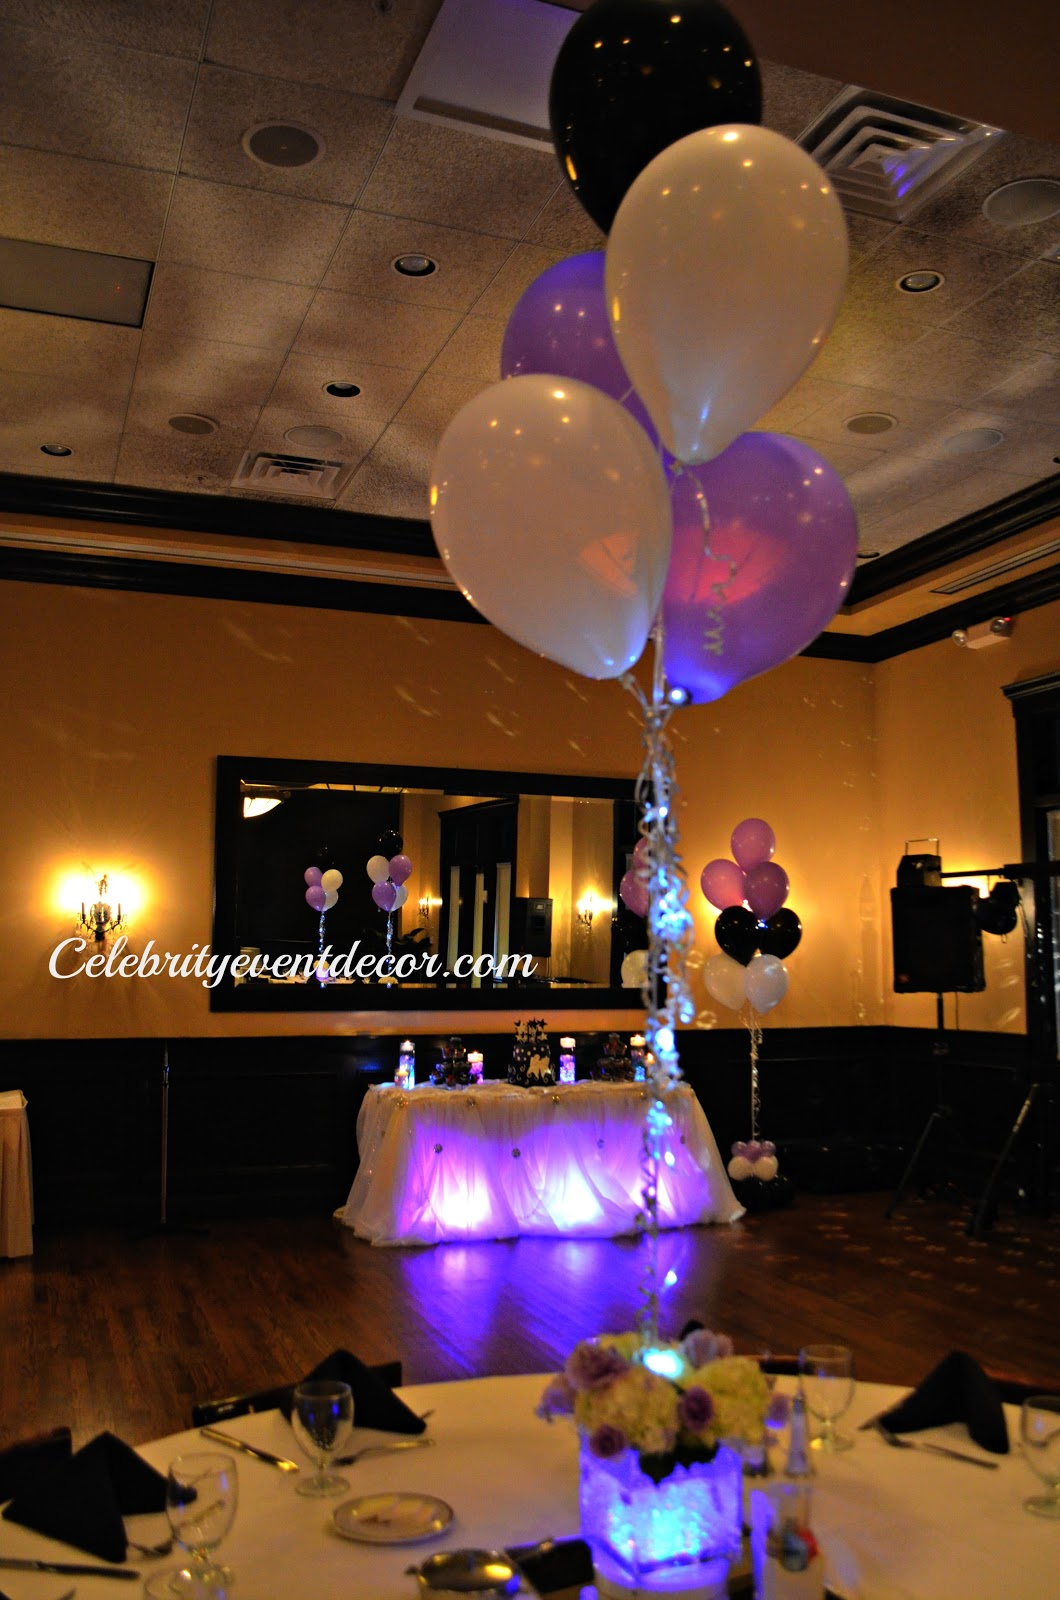 Centerpiece With Lights Out : Celebrity event decor banquet hall llc